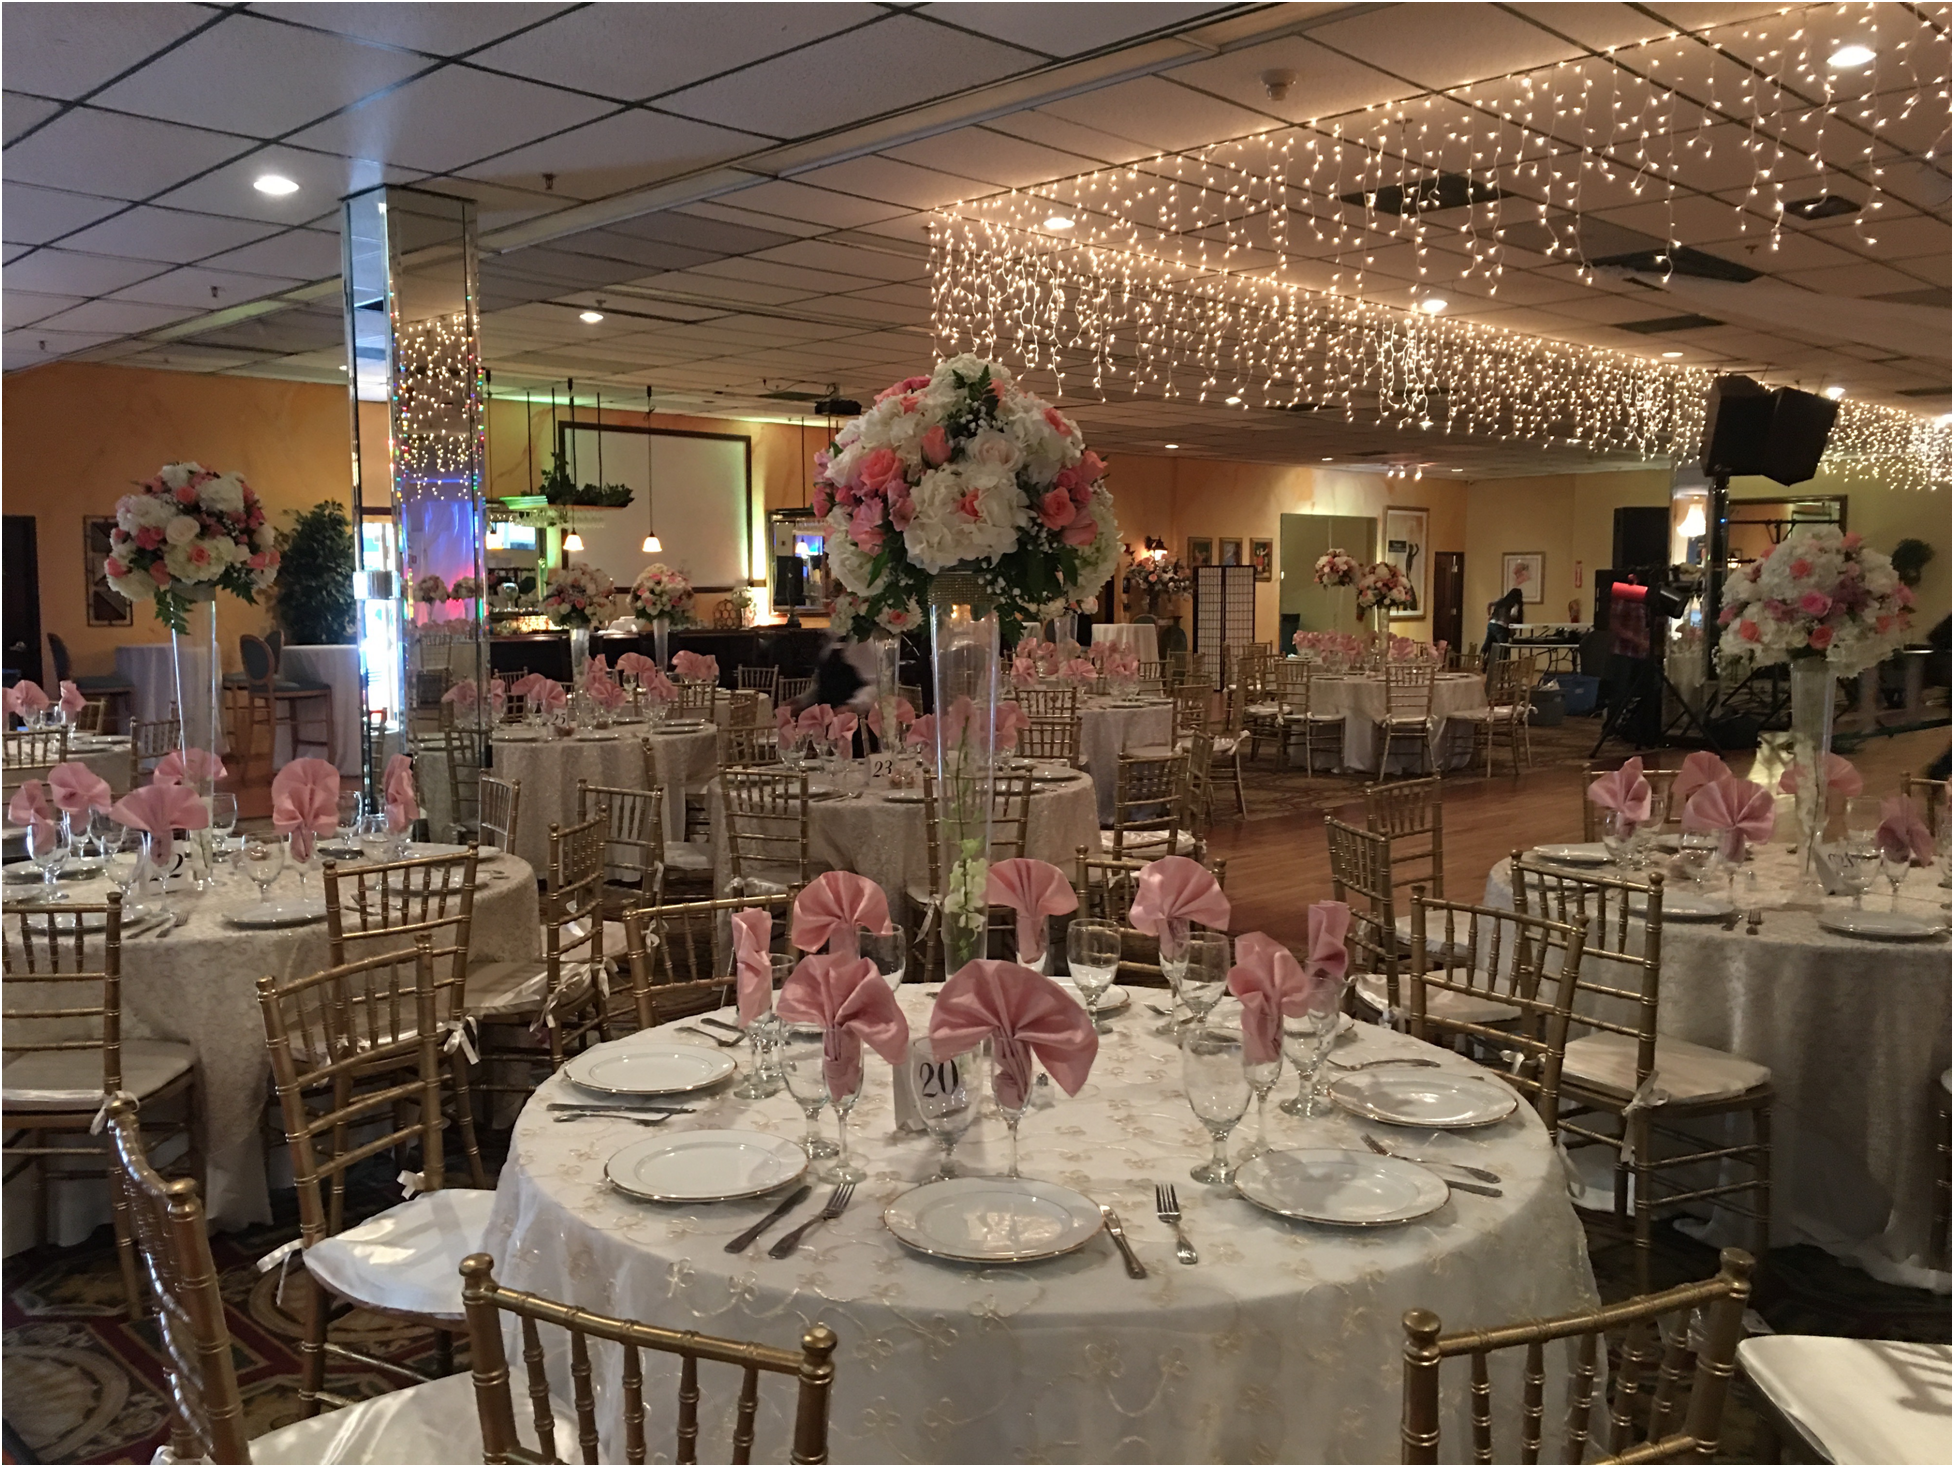 Goldcoast Ballroom, a Magnificent Venue for Weddings & Private Parties